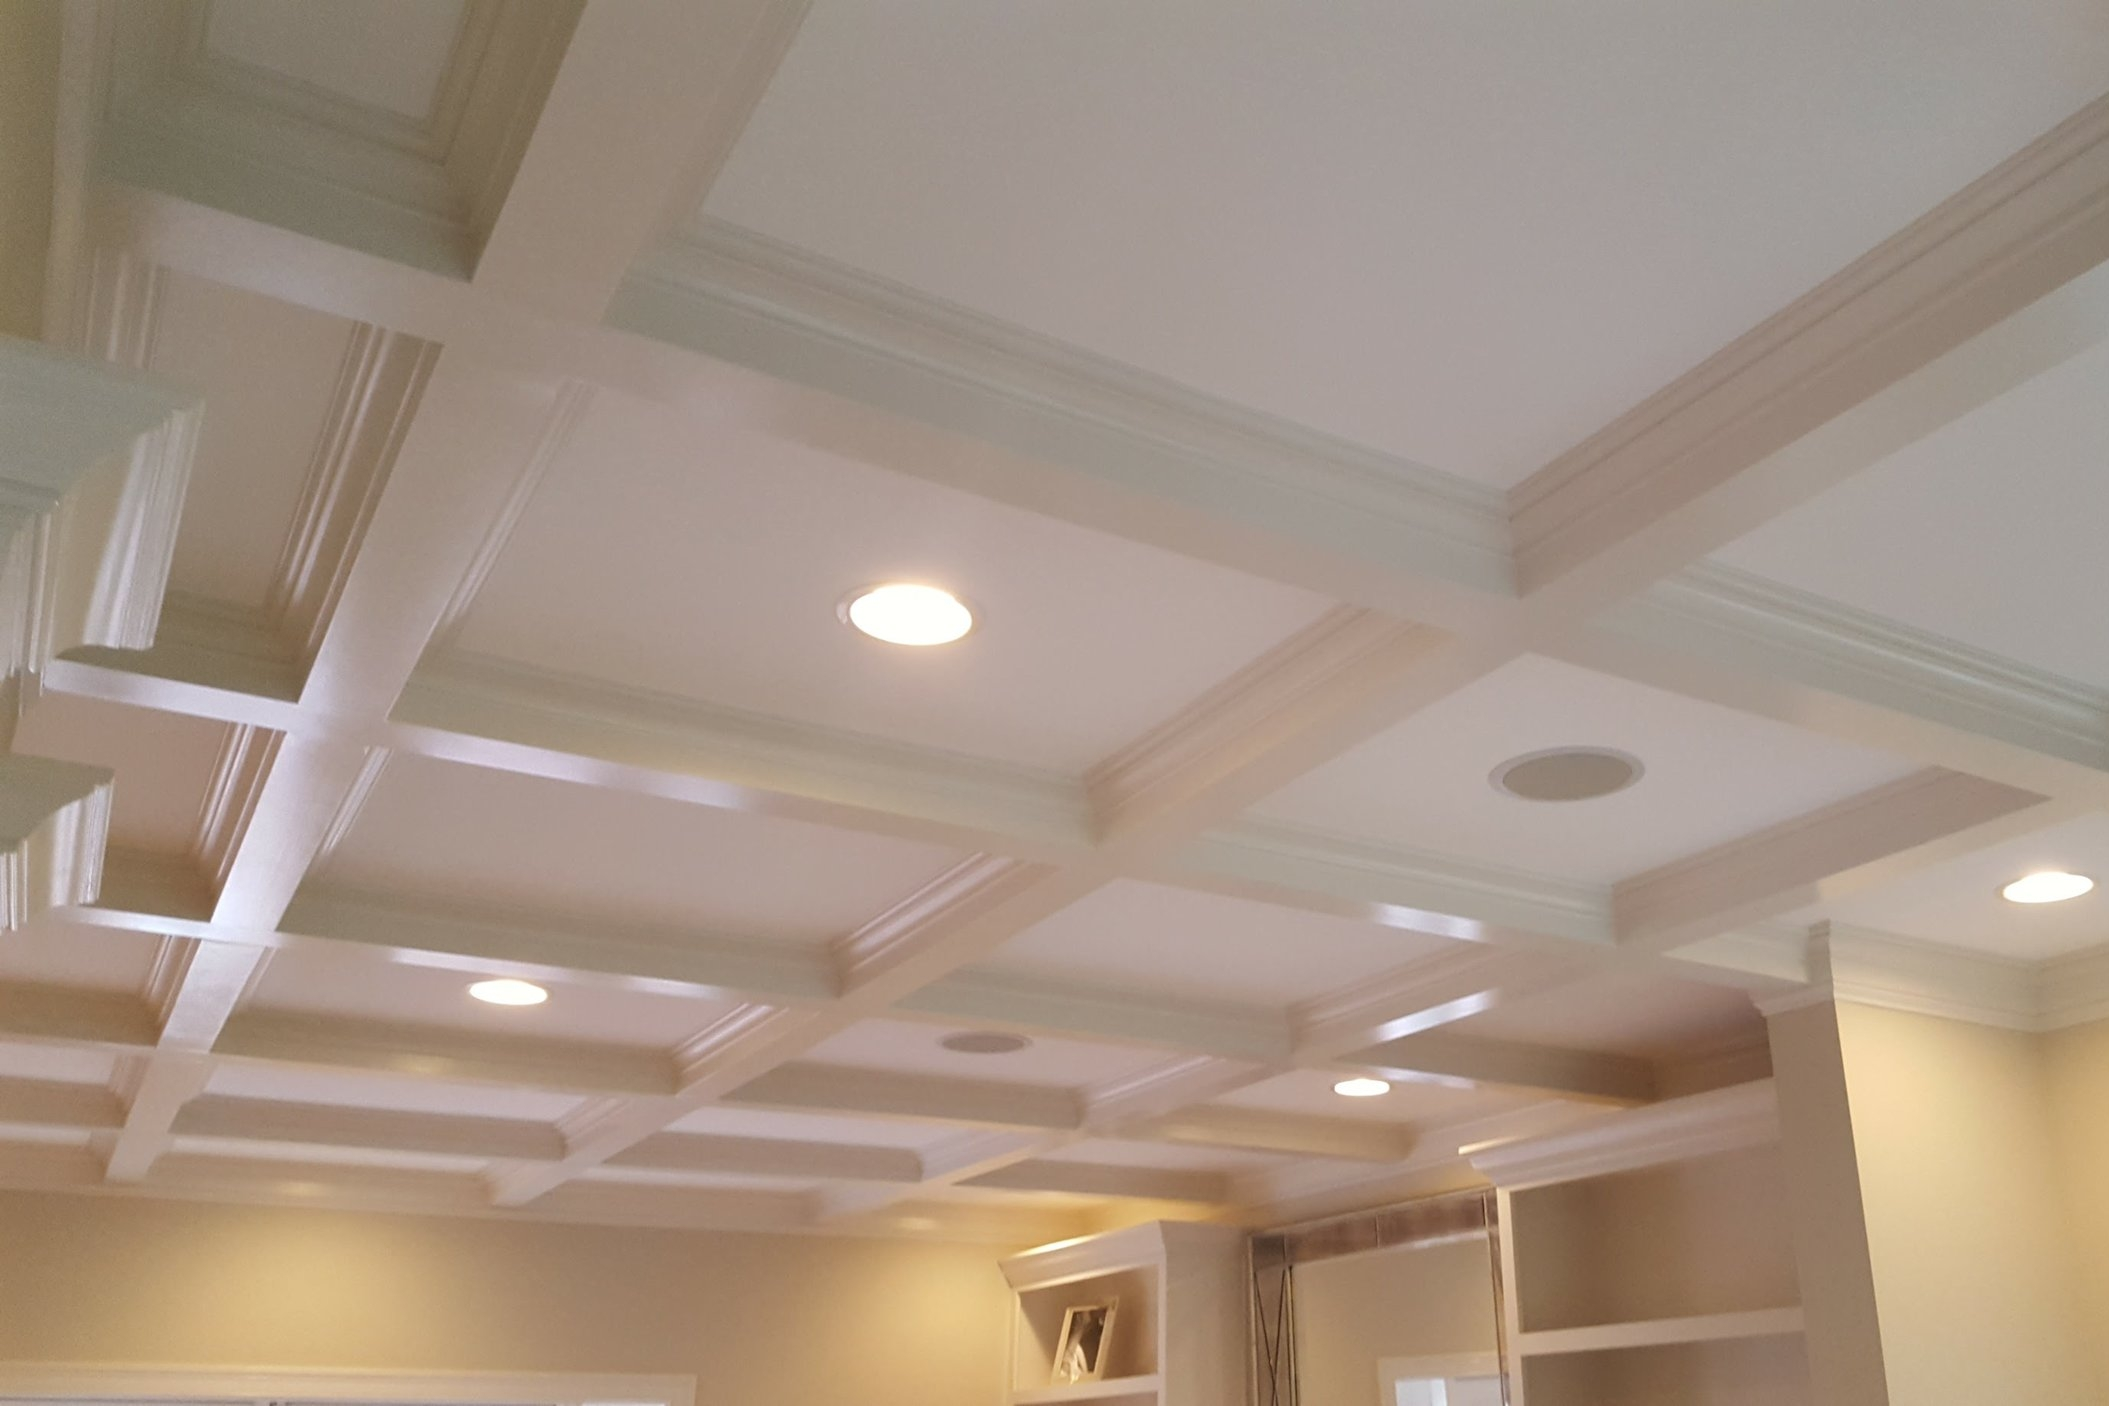 Living Room Remodel with Coffered Ceilings in East Lyme CT | Shaw Remodeling